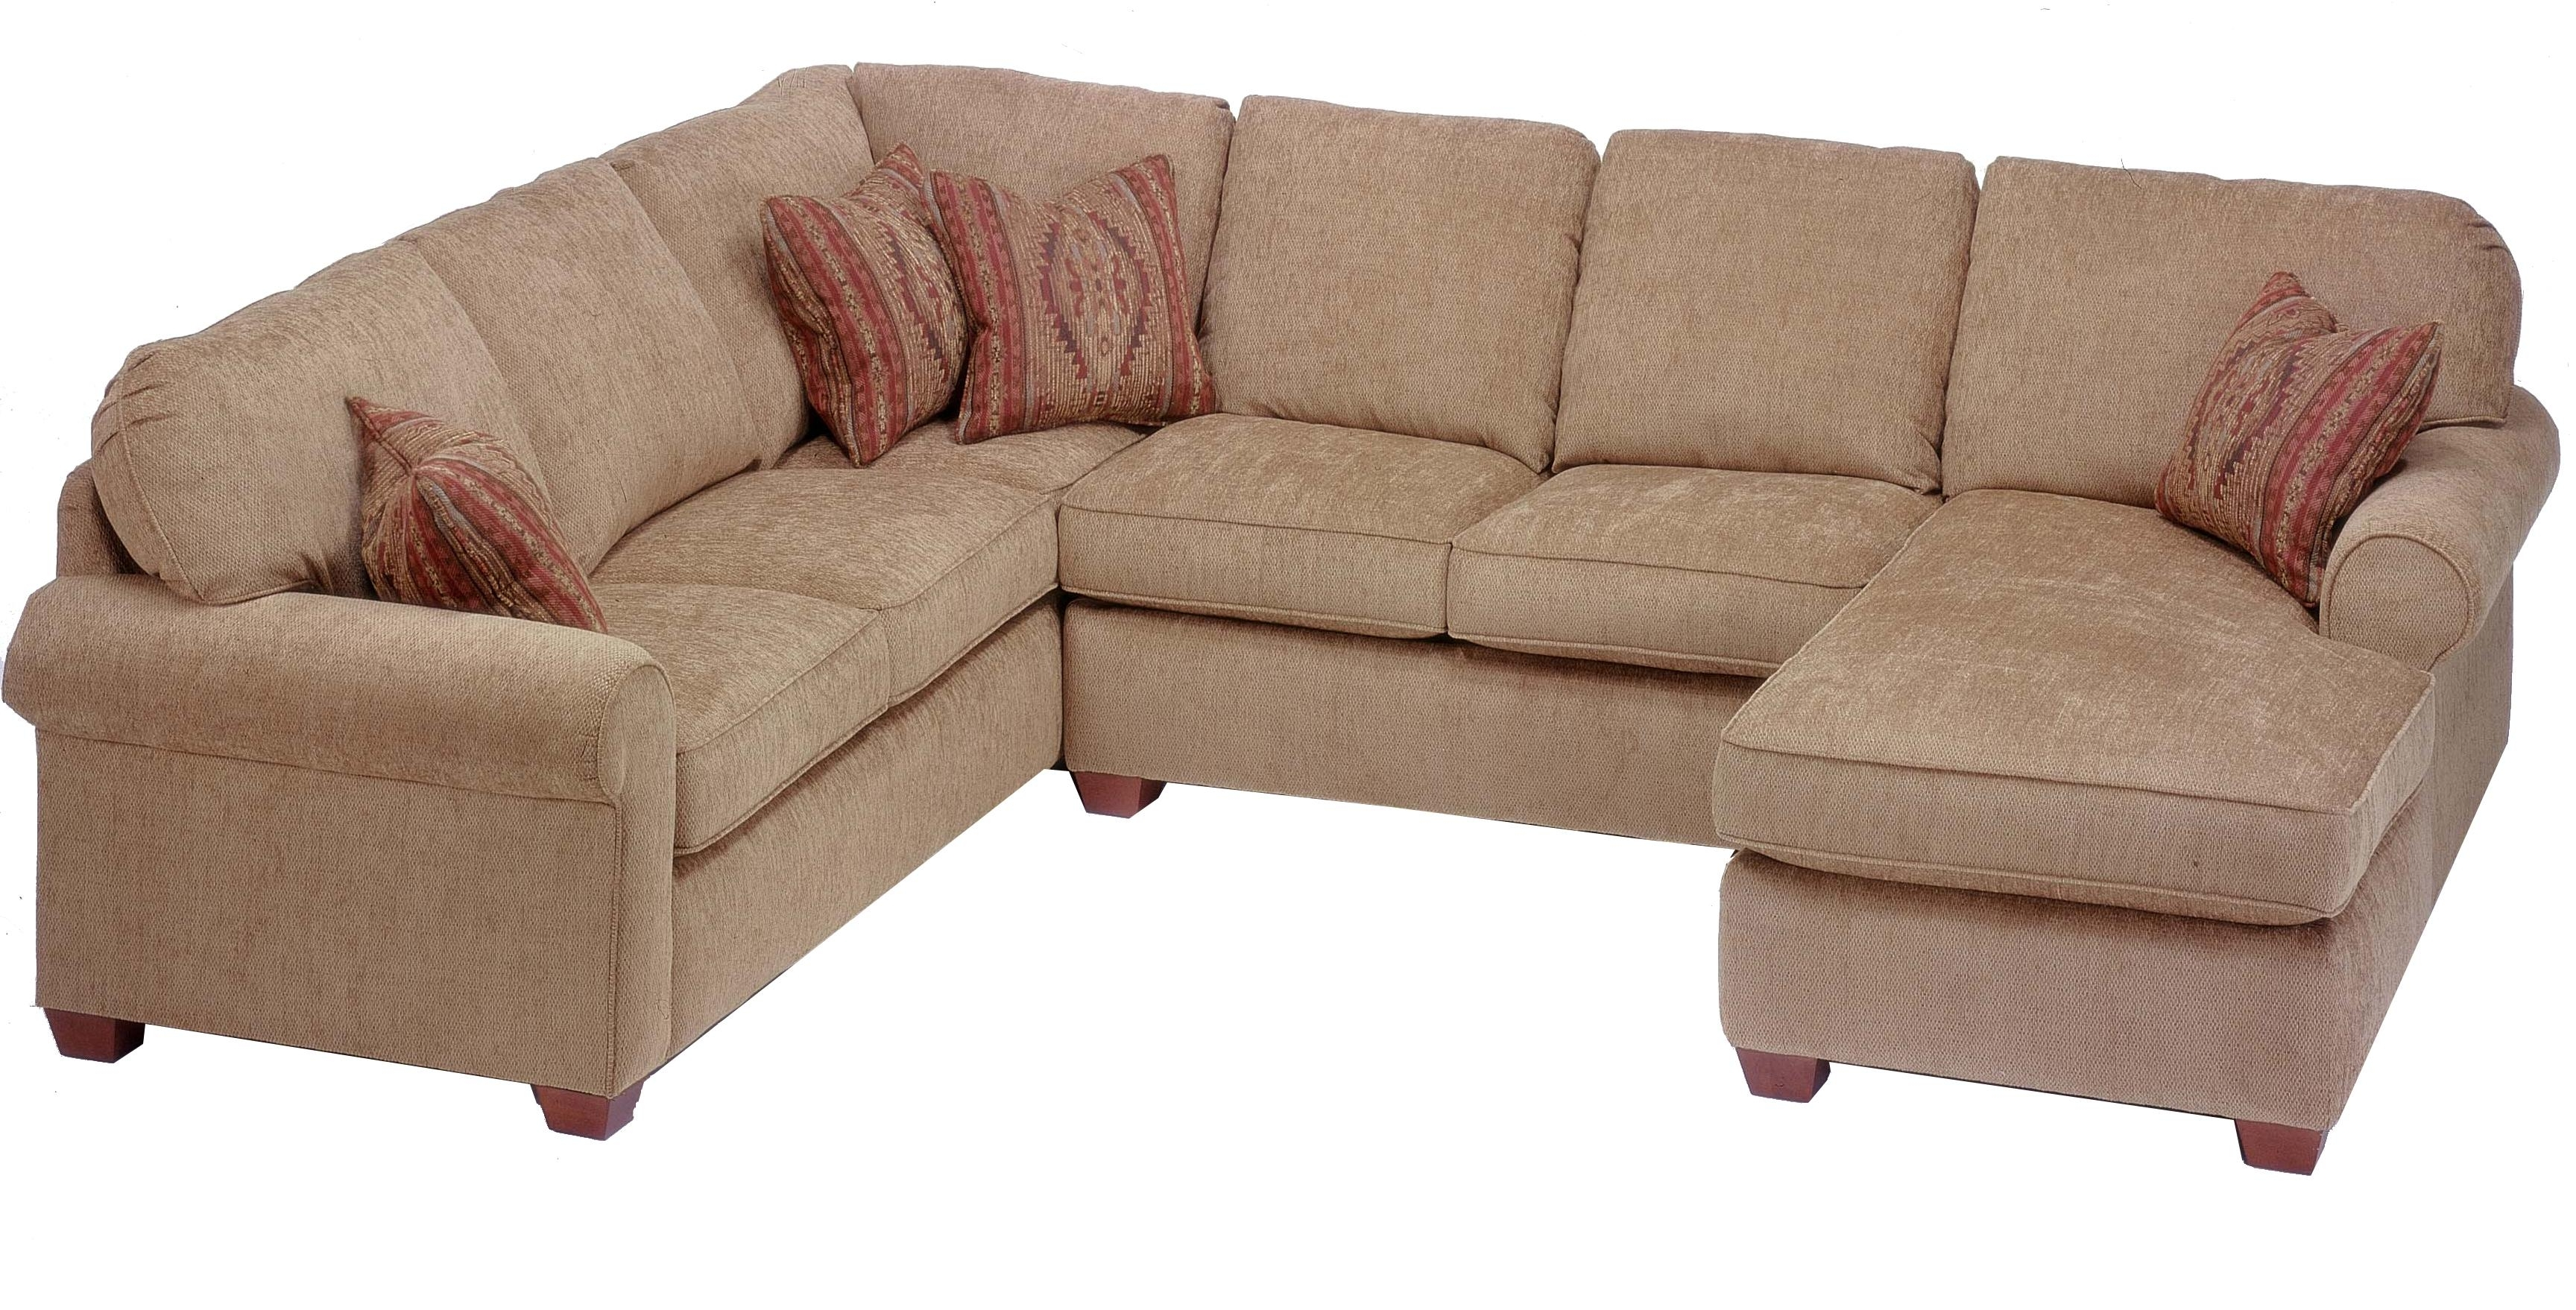 Preferred Flexsteel Thornton 3 Piece Sectional With Chaise – Ahfa – Sofa Pertaining To Visalia Ca Sectional Sofas (View 4 of 20)